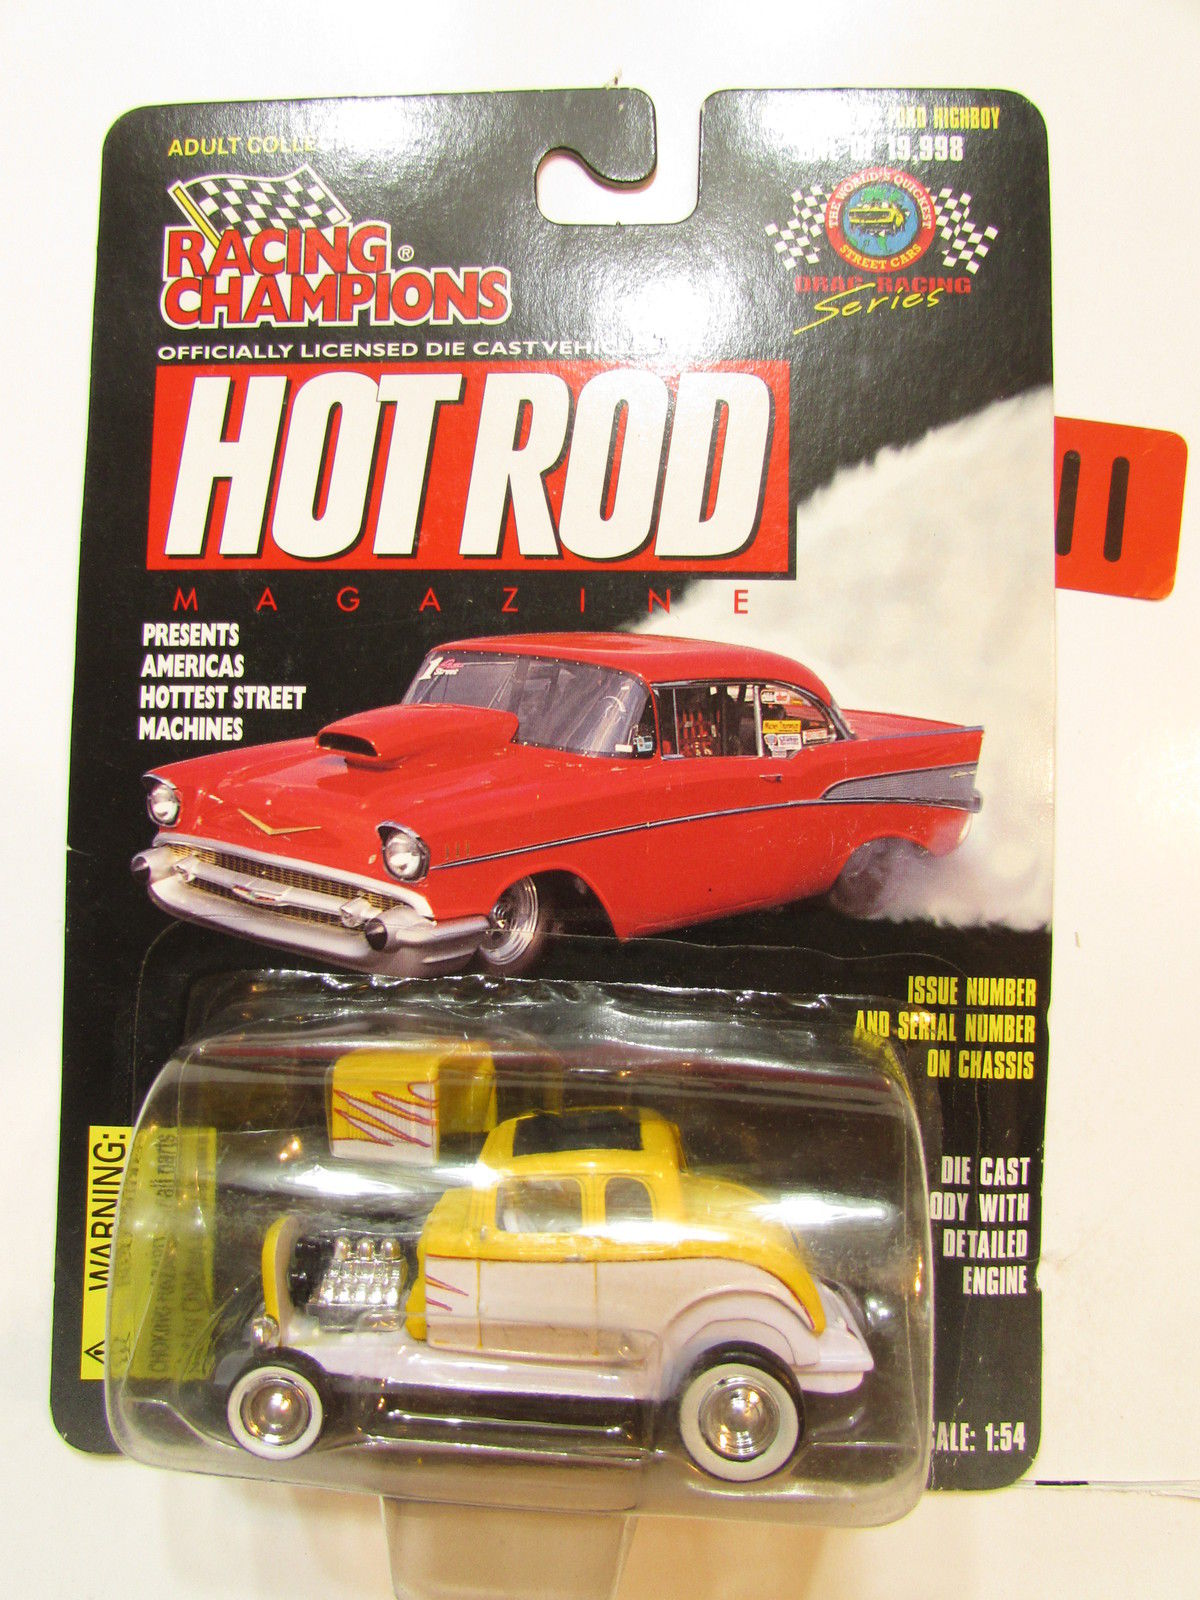 RACING CHAMPIONS HOT ROD ISSUE #74 - '32 FORD HIGHBOY 1:54 SCALE YELLOW